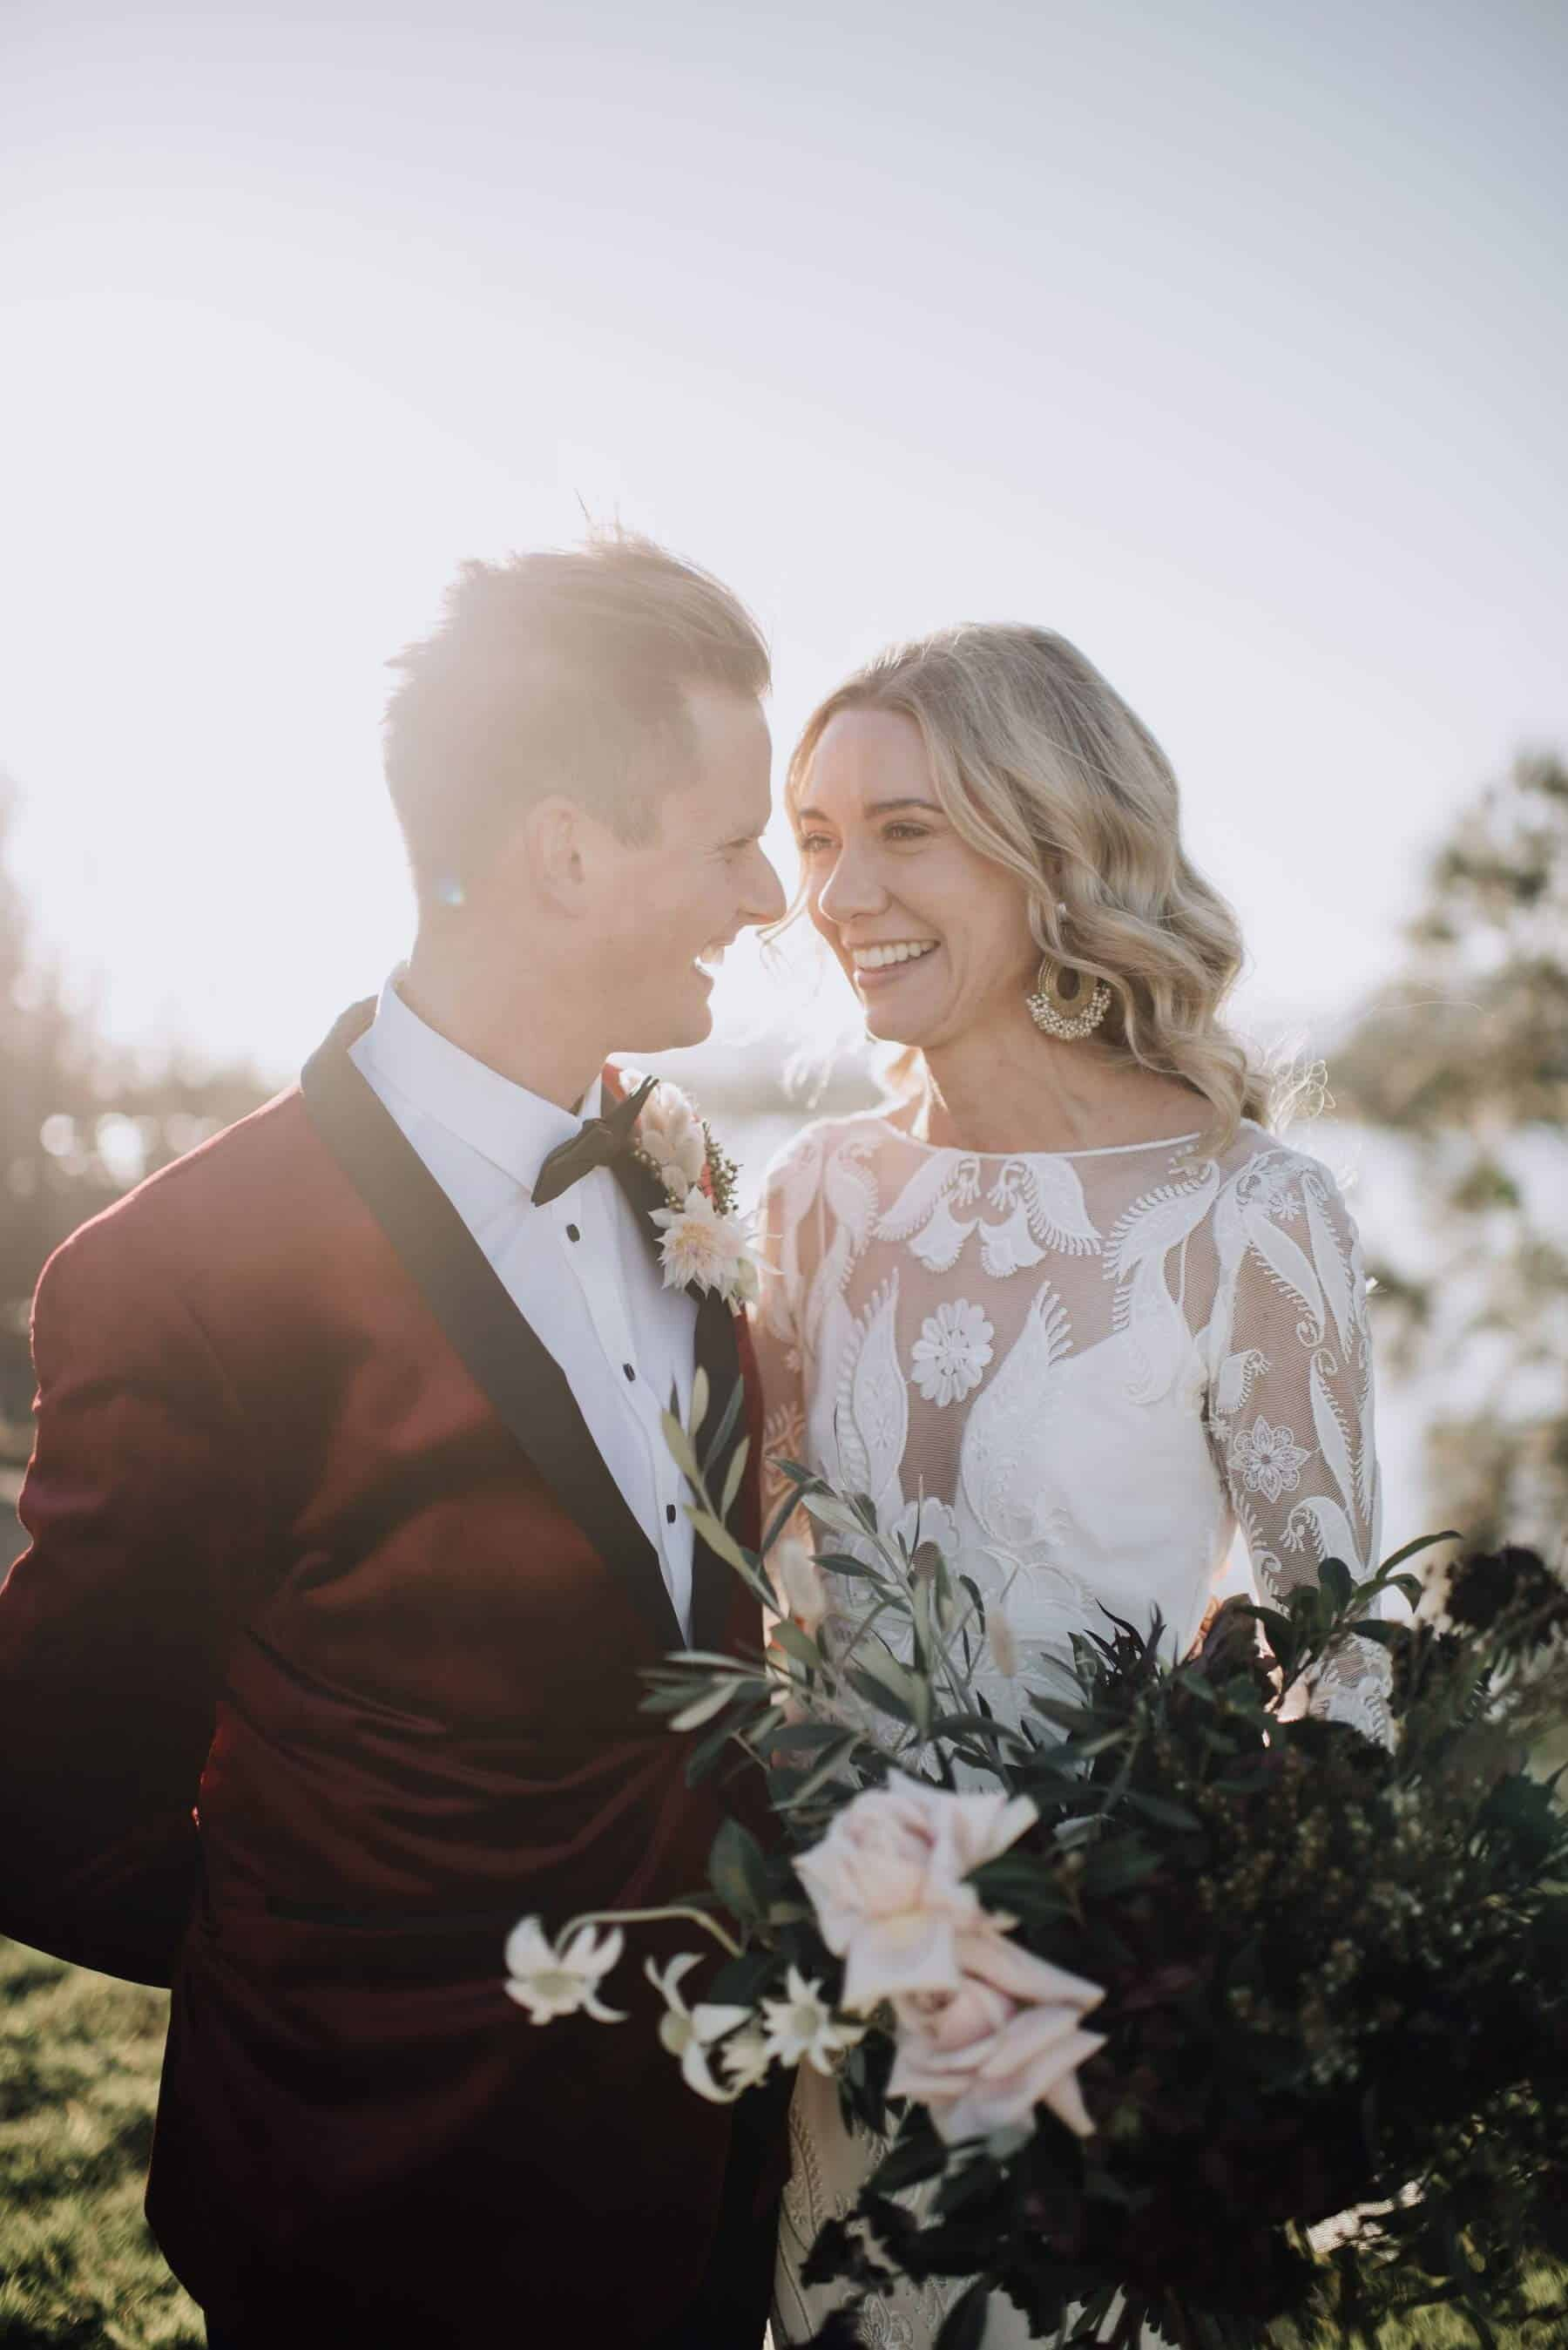 boho bride and groom in burgundy jacket